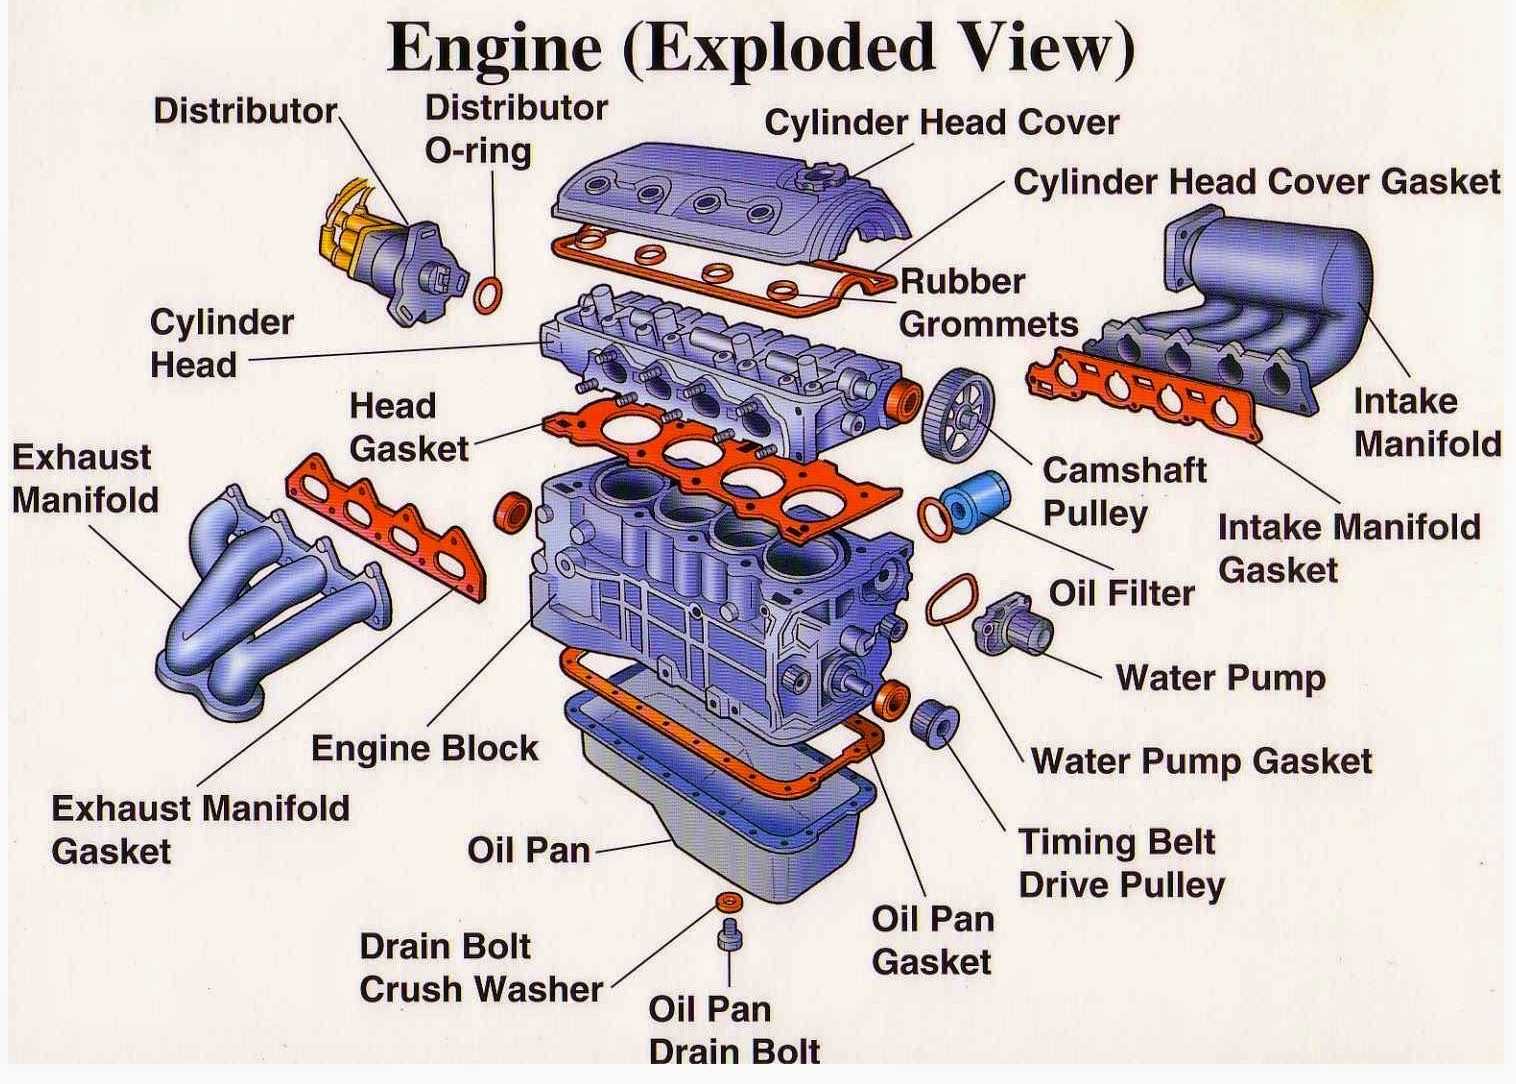 Engine Parts Exploded View Electrical Engineering World Gasoline Powered Diagram